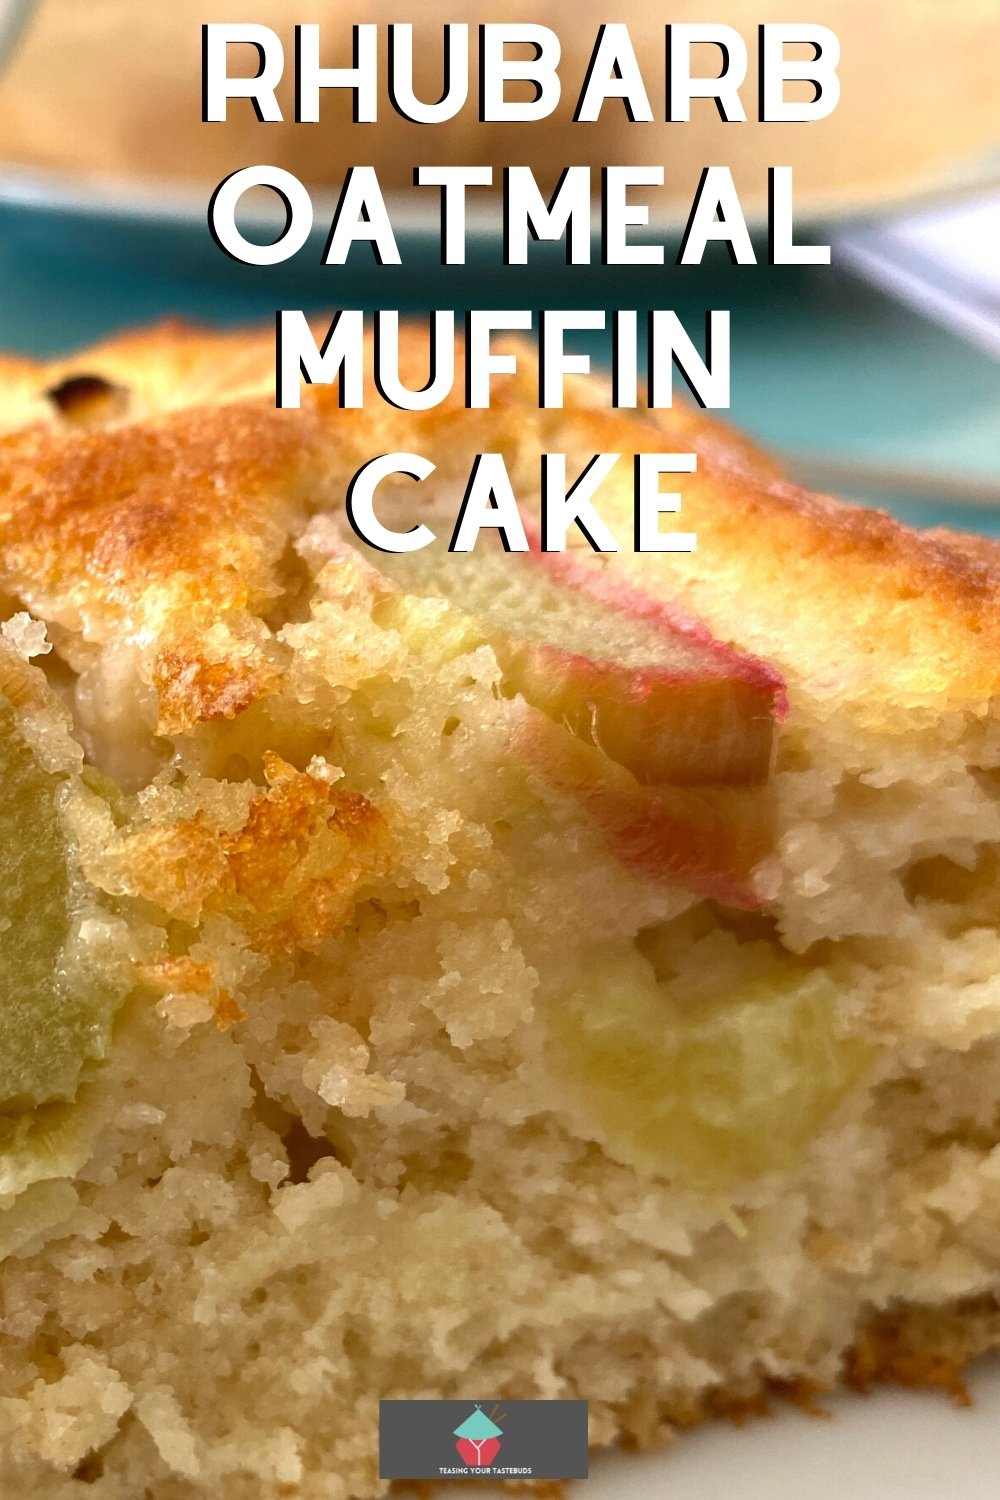 Rhubarb Oatmeal Muffin Cake is a great old fashioned breakfast cake! It's easy to make, bursting with juicy rhubarb and has a great texture from the oats.